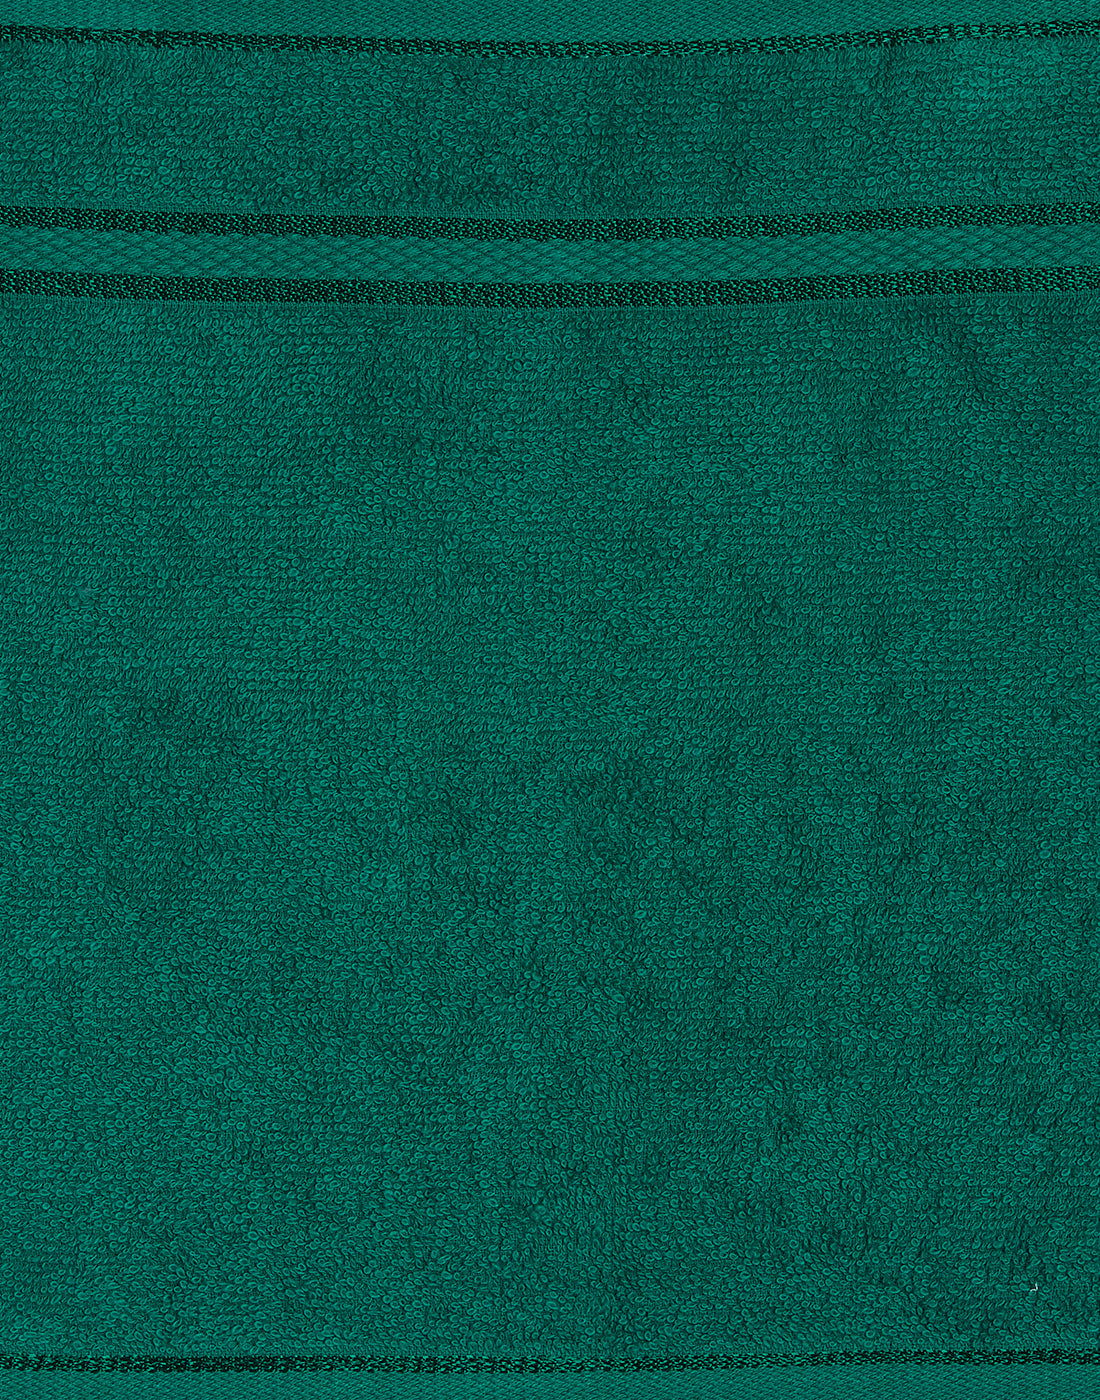 Octave Green Set of 4 Cotton Face Towels